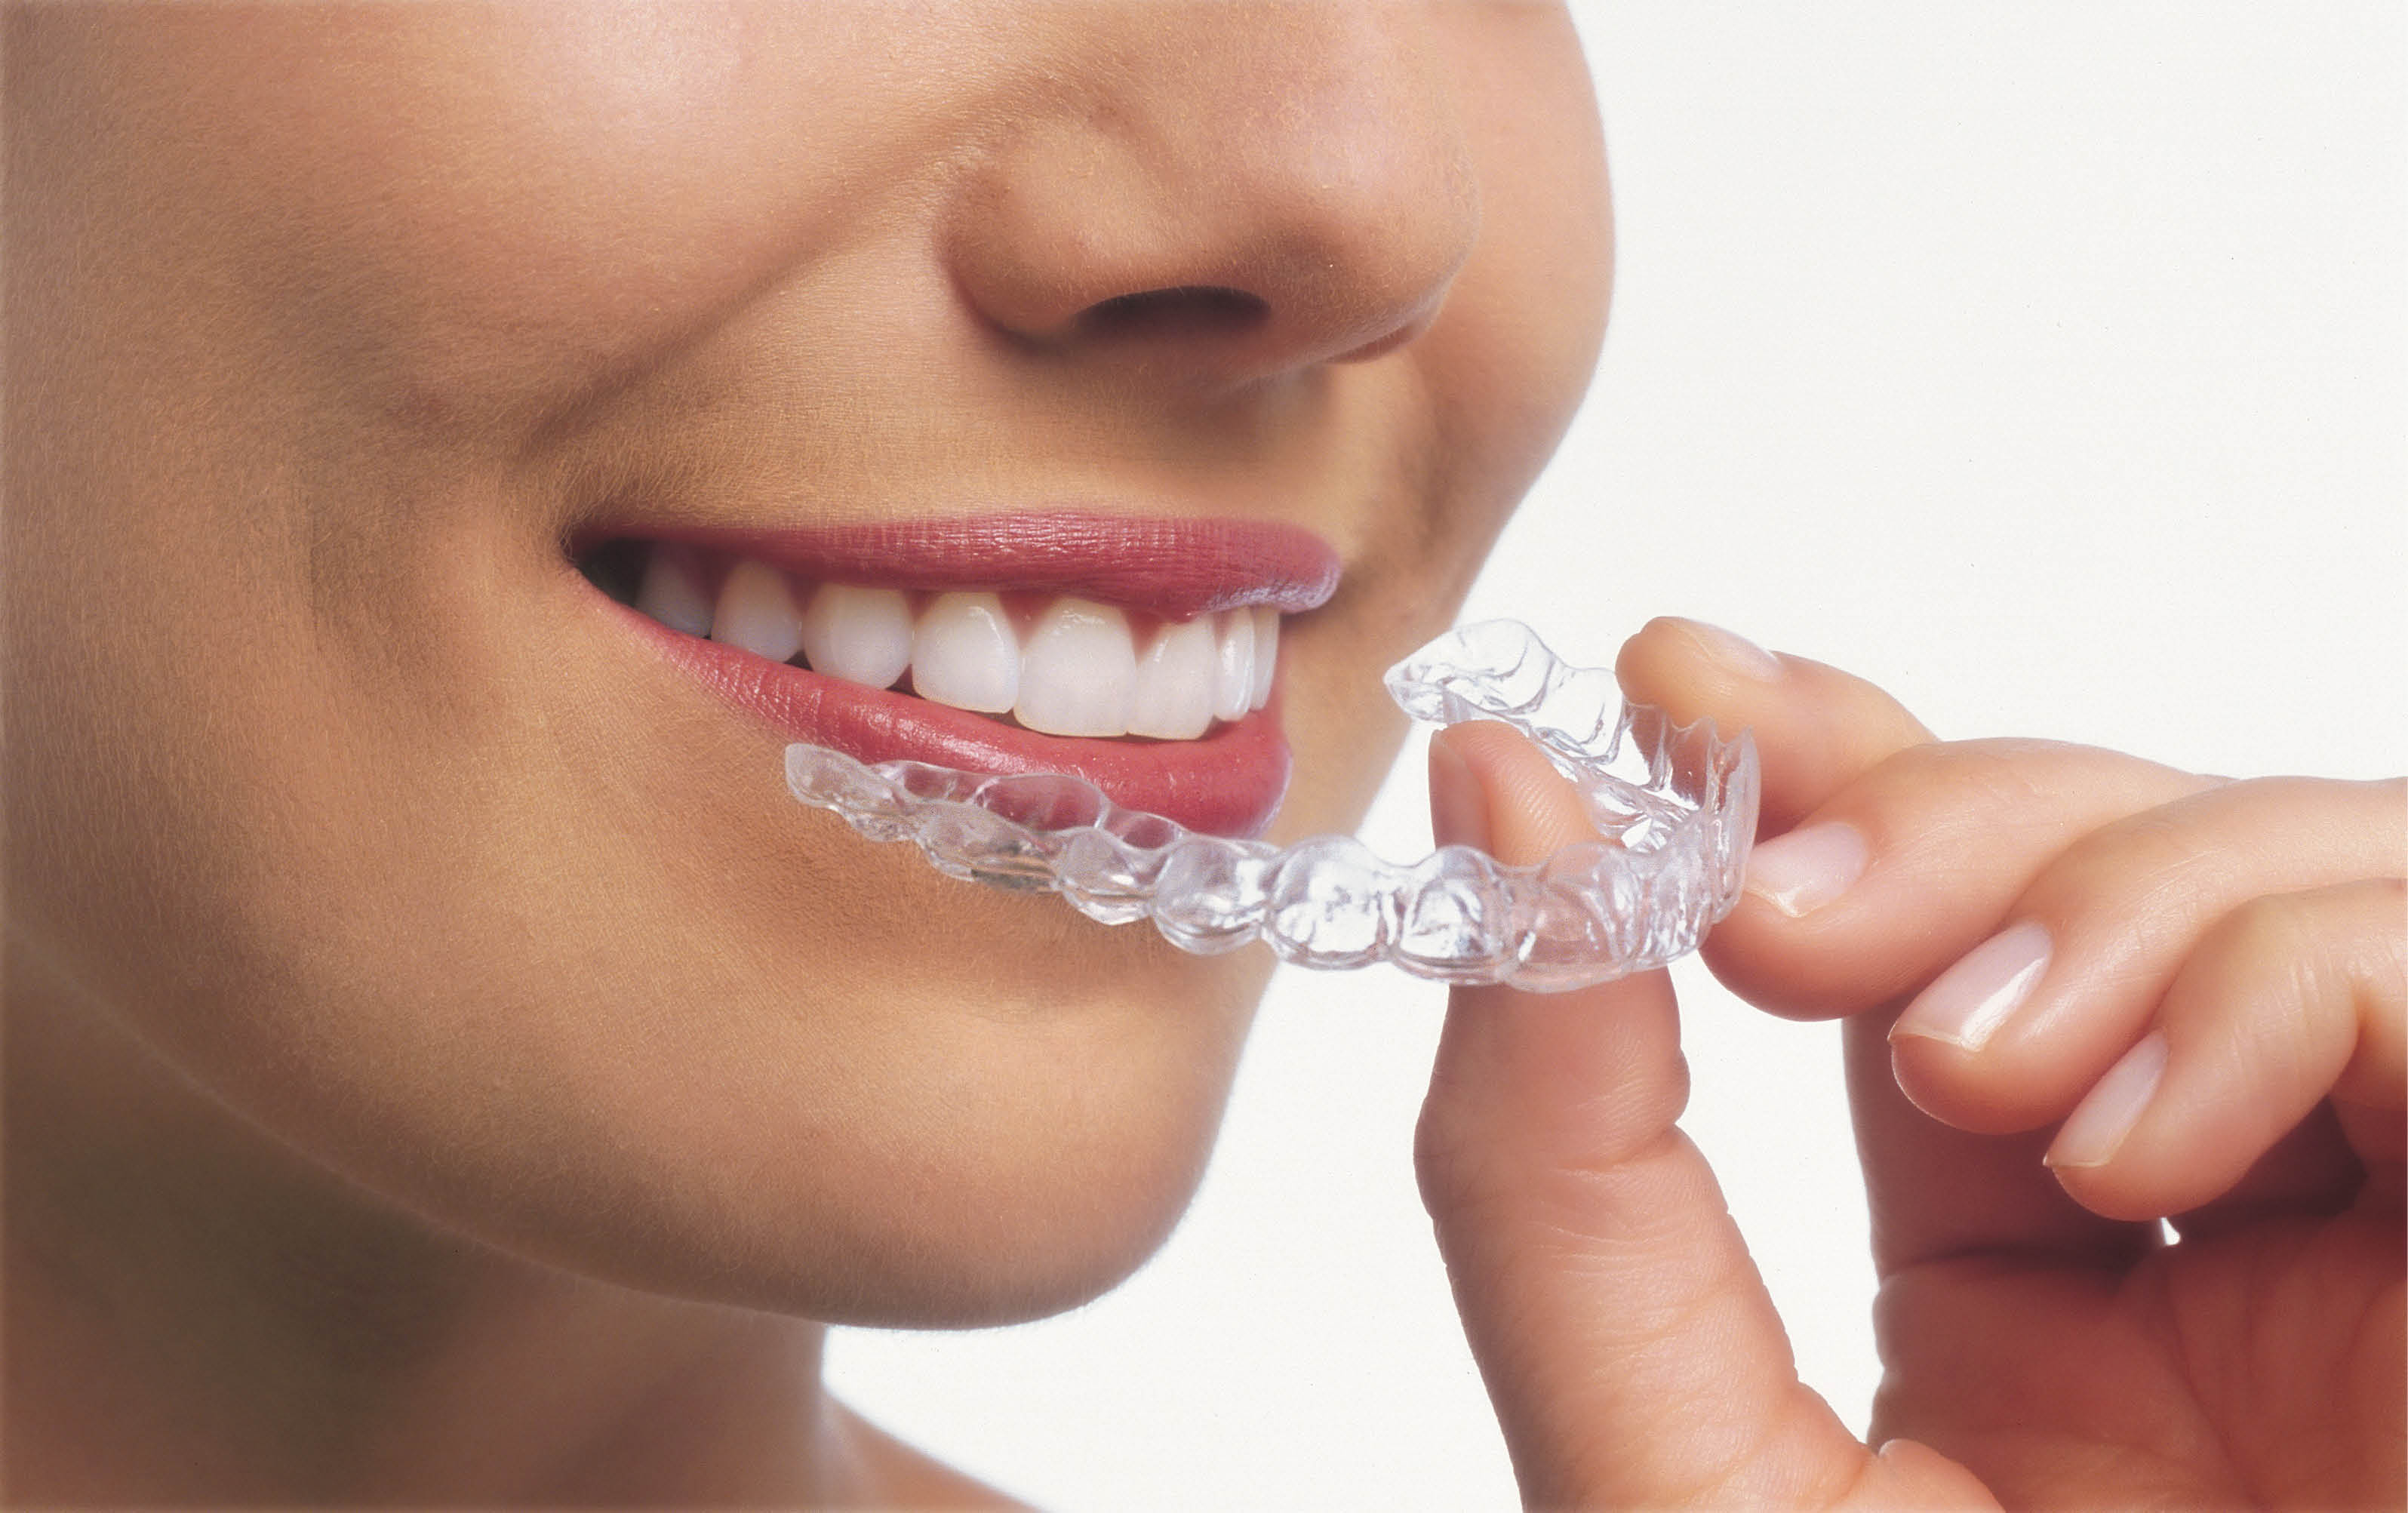 Nordberg Orthodontics - Invisalign clear braces - clear aligners - orthodontists in Puyallup, Washington